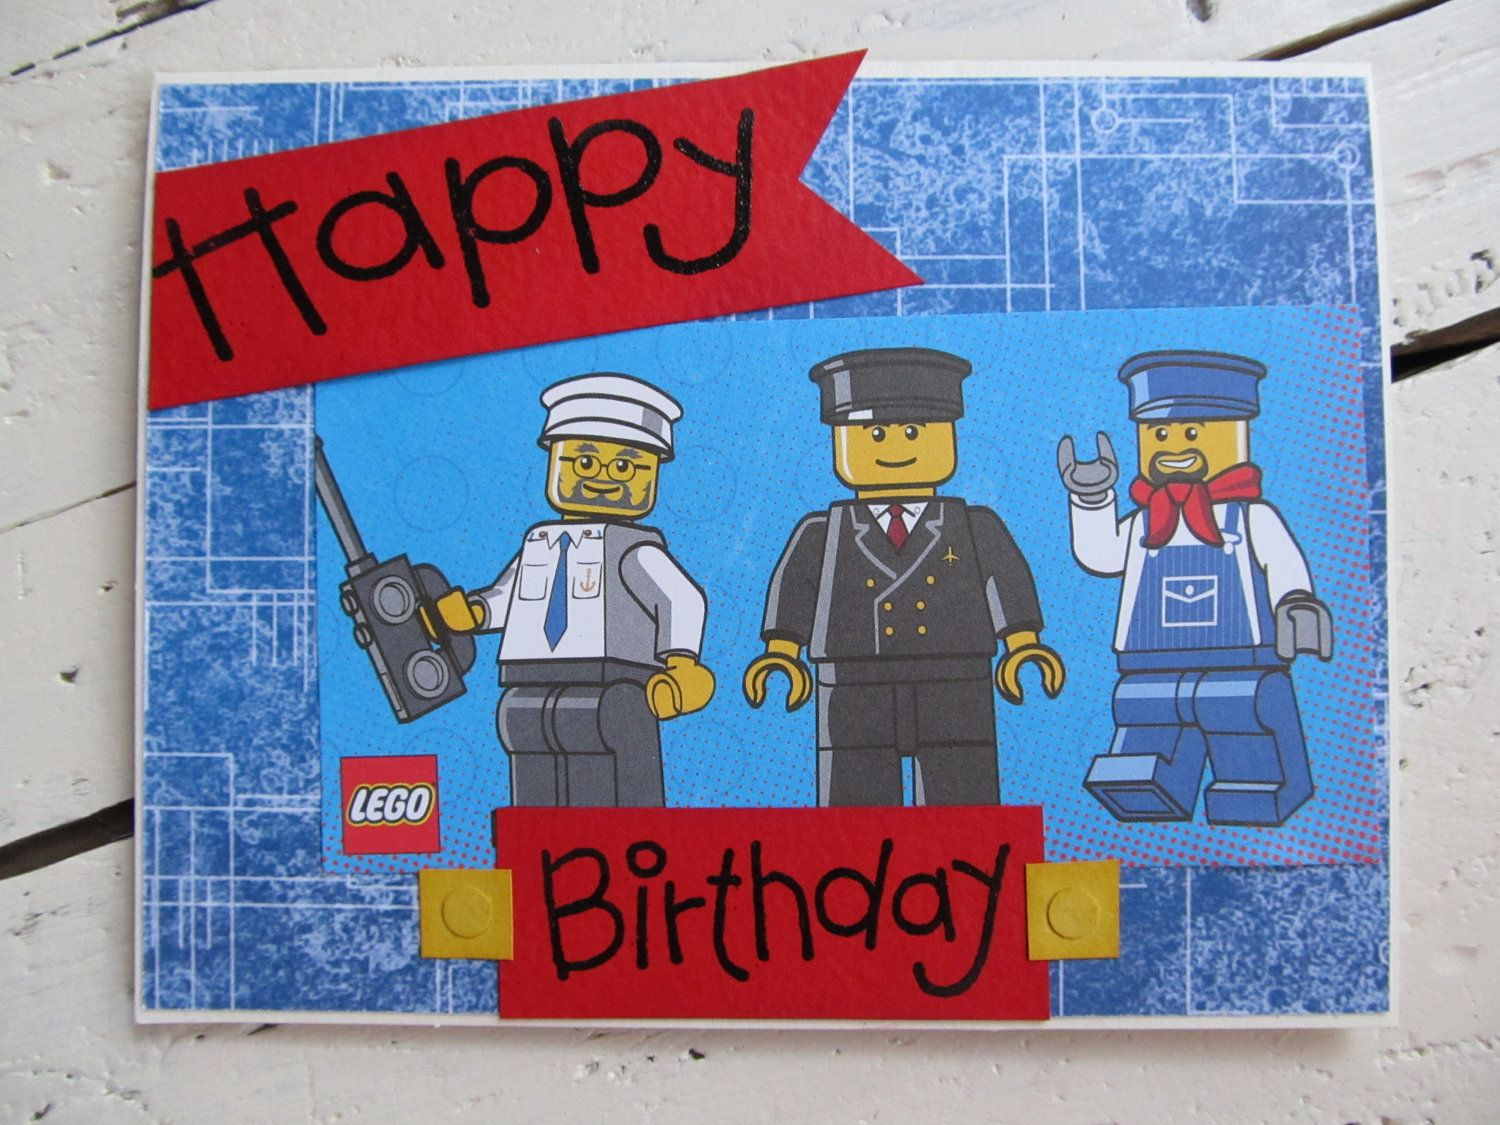 Lego movie printable b day cards printable lego birthday card lego movie printable b day cards printable lego birthday card pictures bookmarktalkfo Image collections